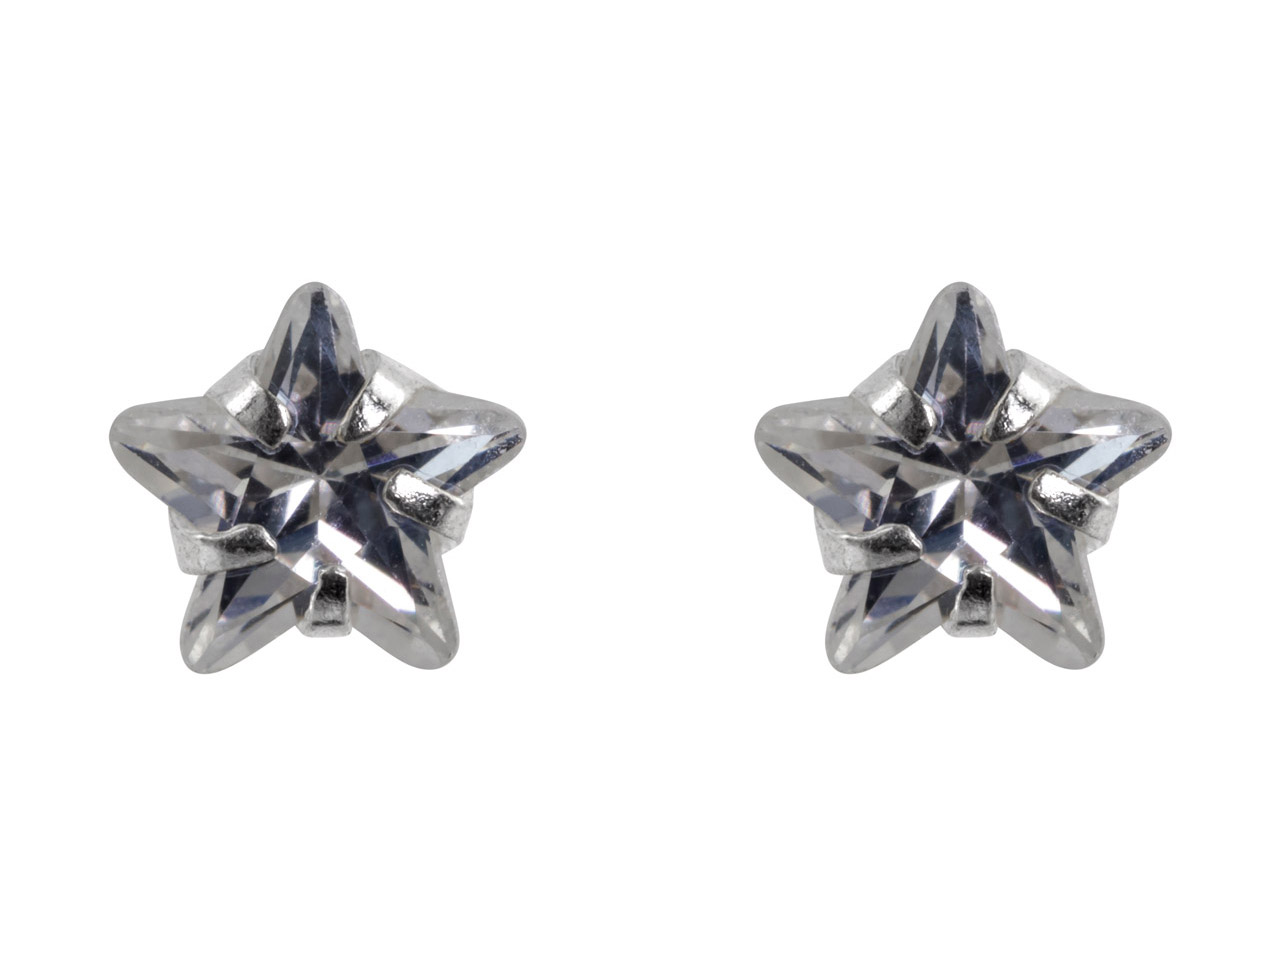 Sterling Silver Star Stud Earrings With Colourless Cubic Zirconia